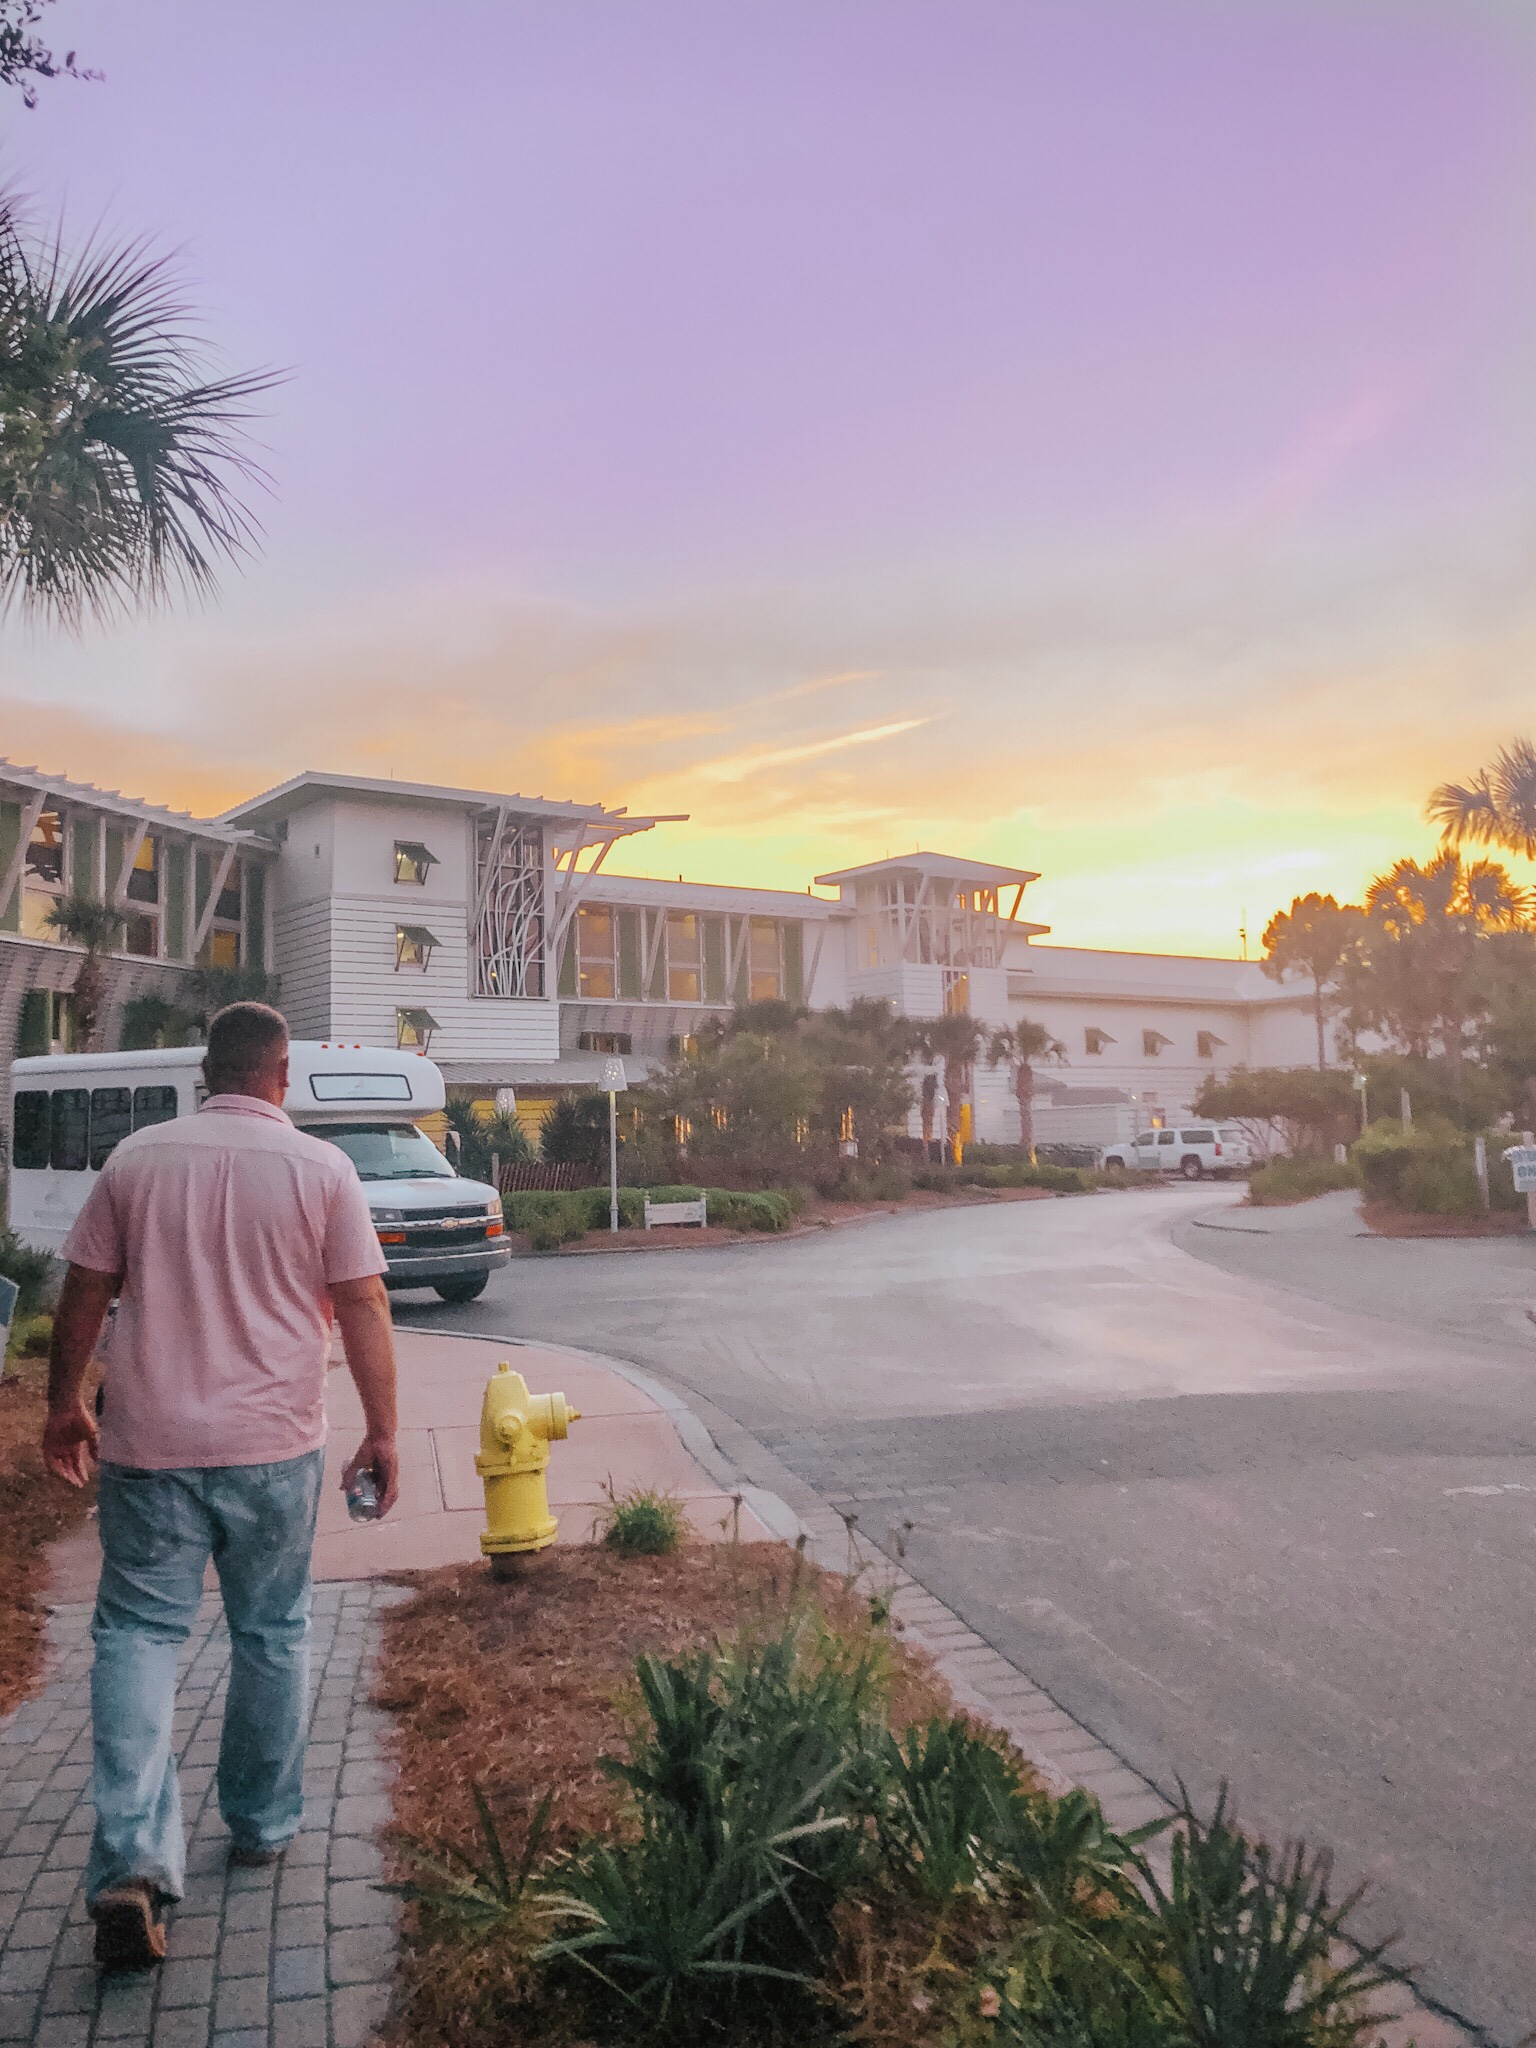 Watercolor Inn - where to stay on 30A - 30A hotel